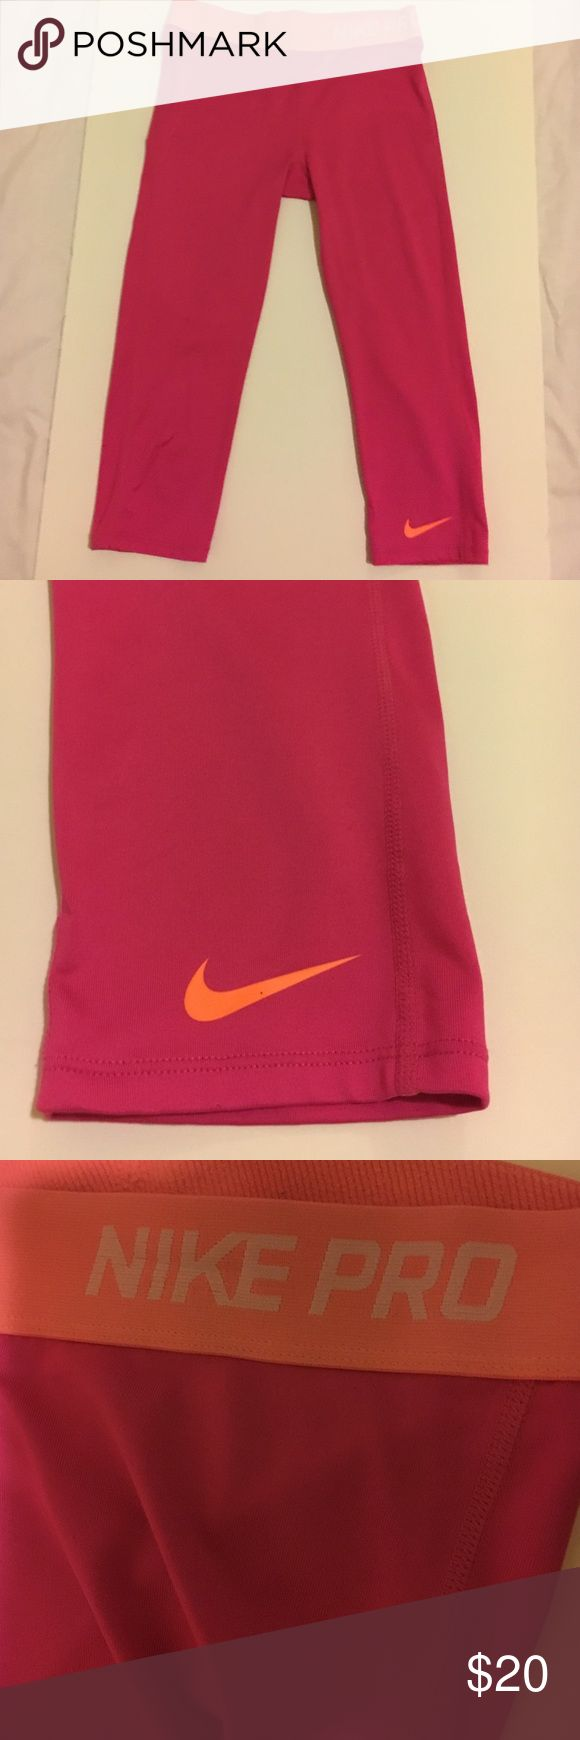 Nike Pro Pink Capri Size Large Girls Shows minimal signs of use. Worn it 2 or 3 times. This is a girls size. It would fit a xs size in women's. Waist is about 24in. Open to offers. Nike Bottoms Leggings